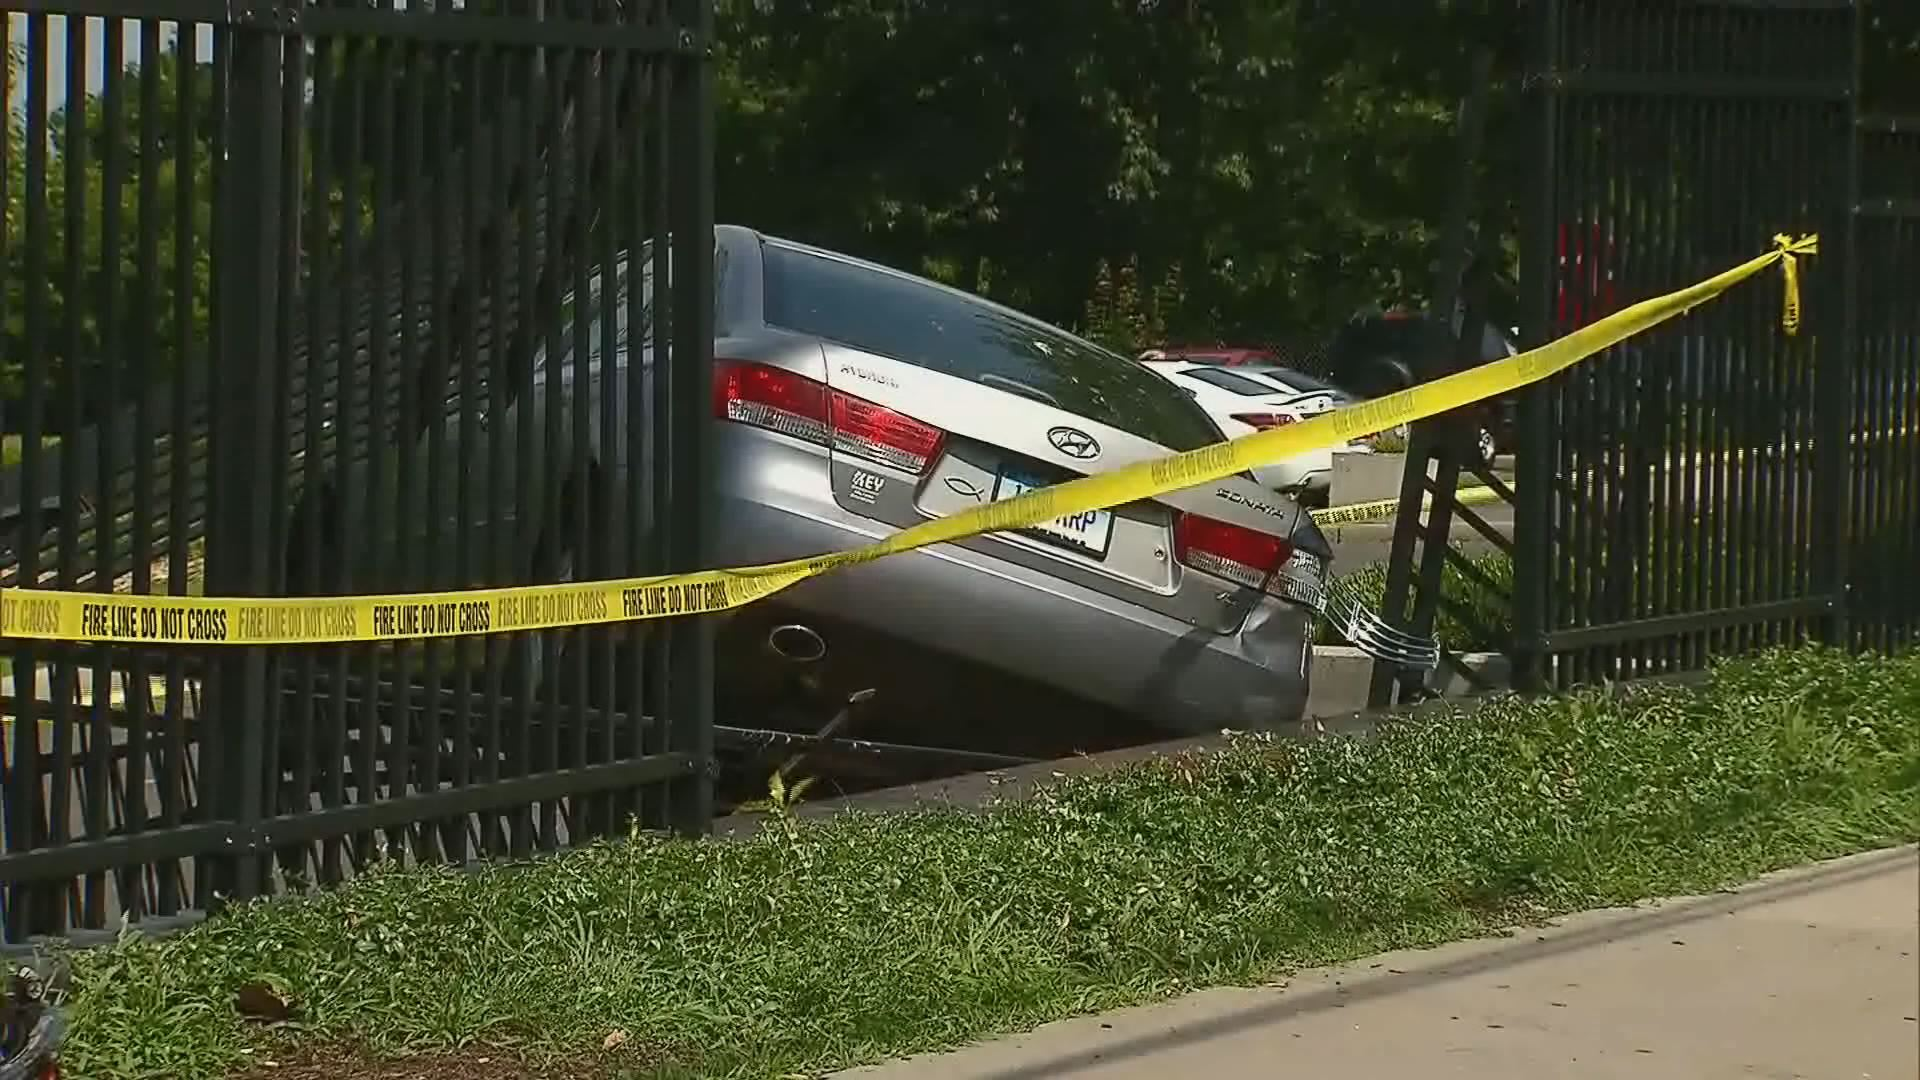 Bridgeport Hospital authorities said an elderly man lost control of his car and crashed through fencing near the hospital emergency room entrance on Monday.